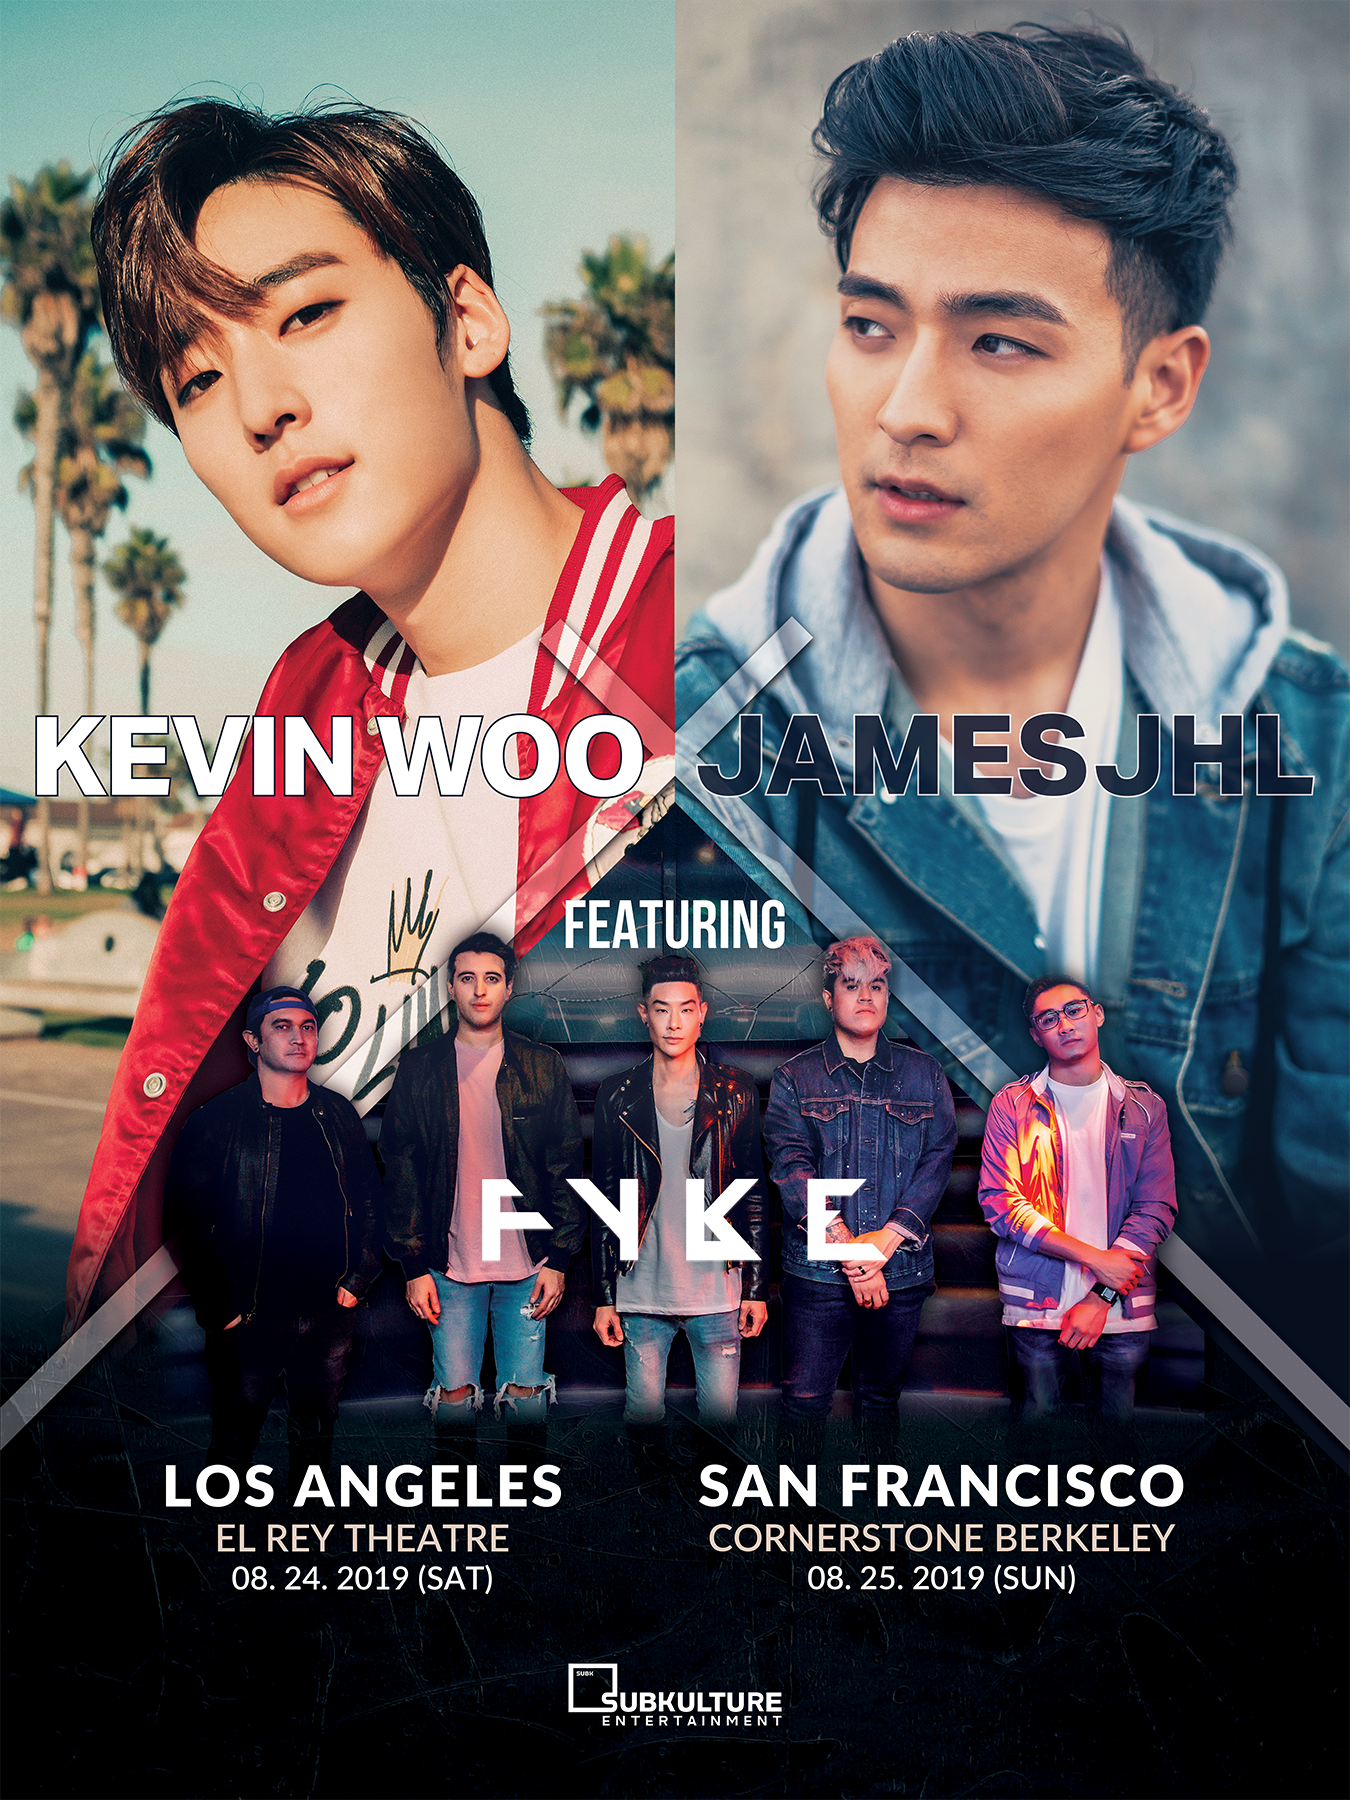 kevin woo, ukiss kevin, james, prirate, james, cities, james jhl